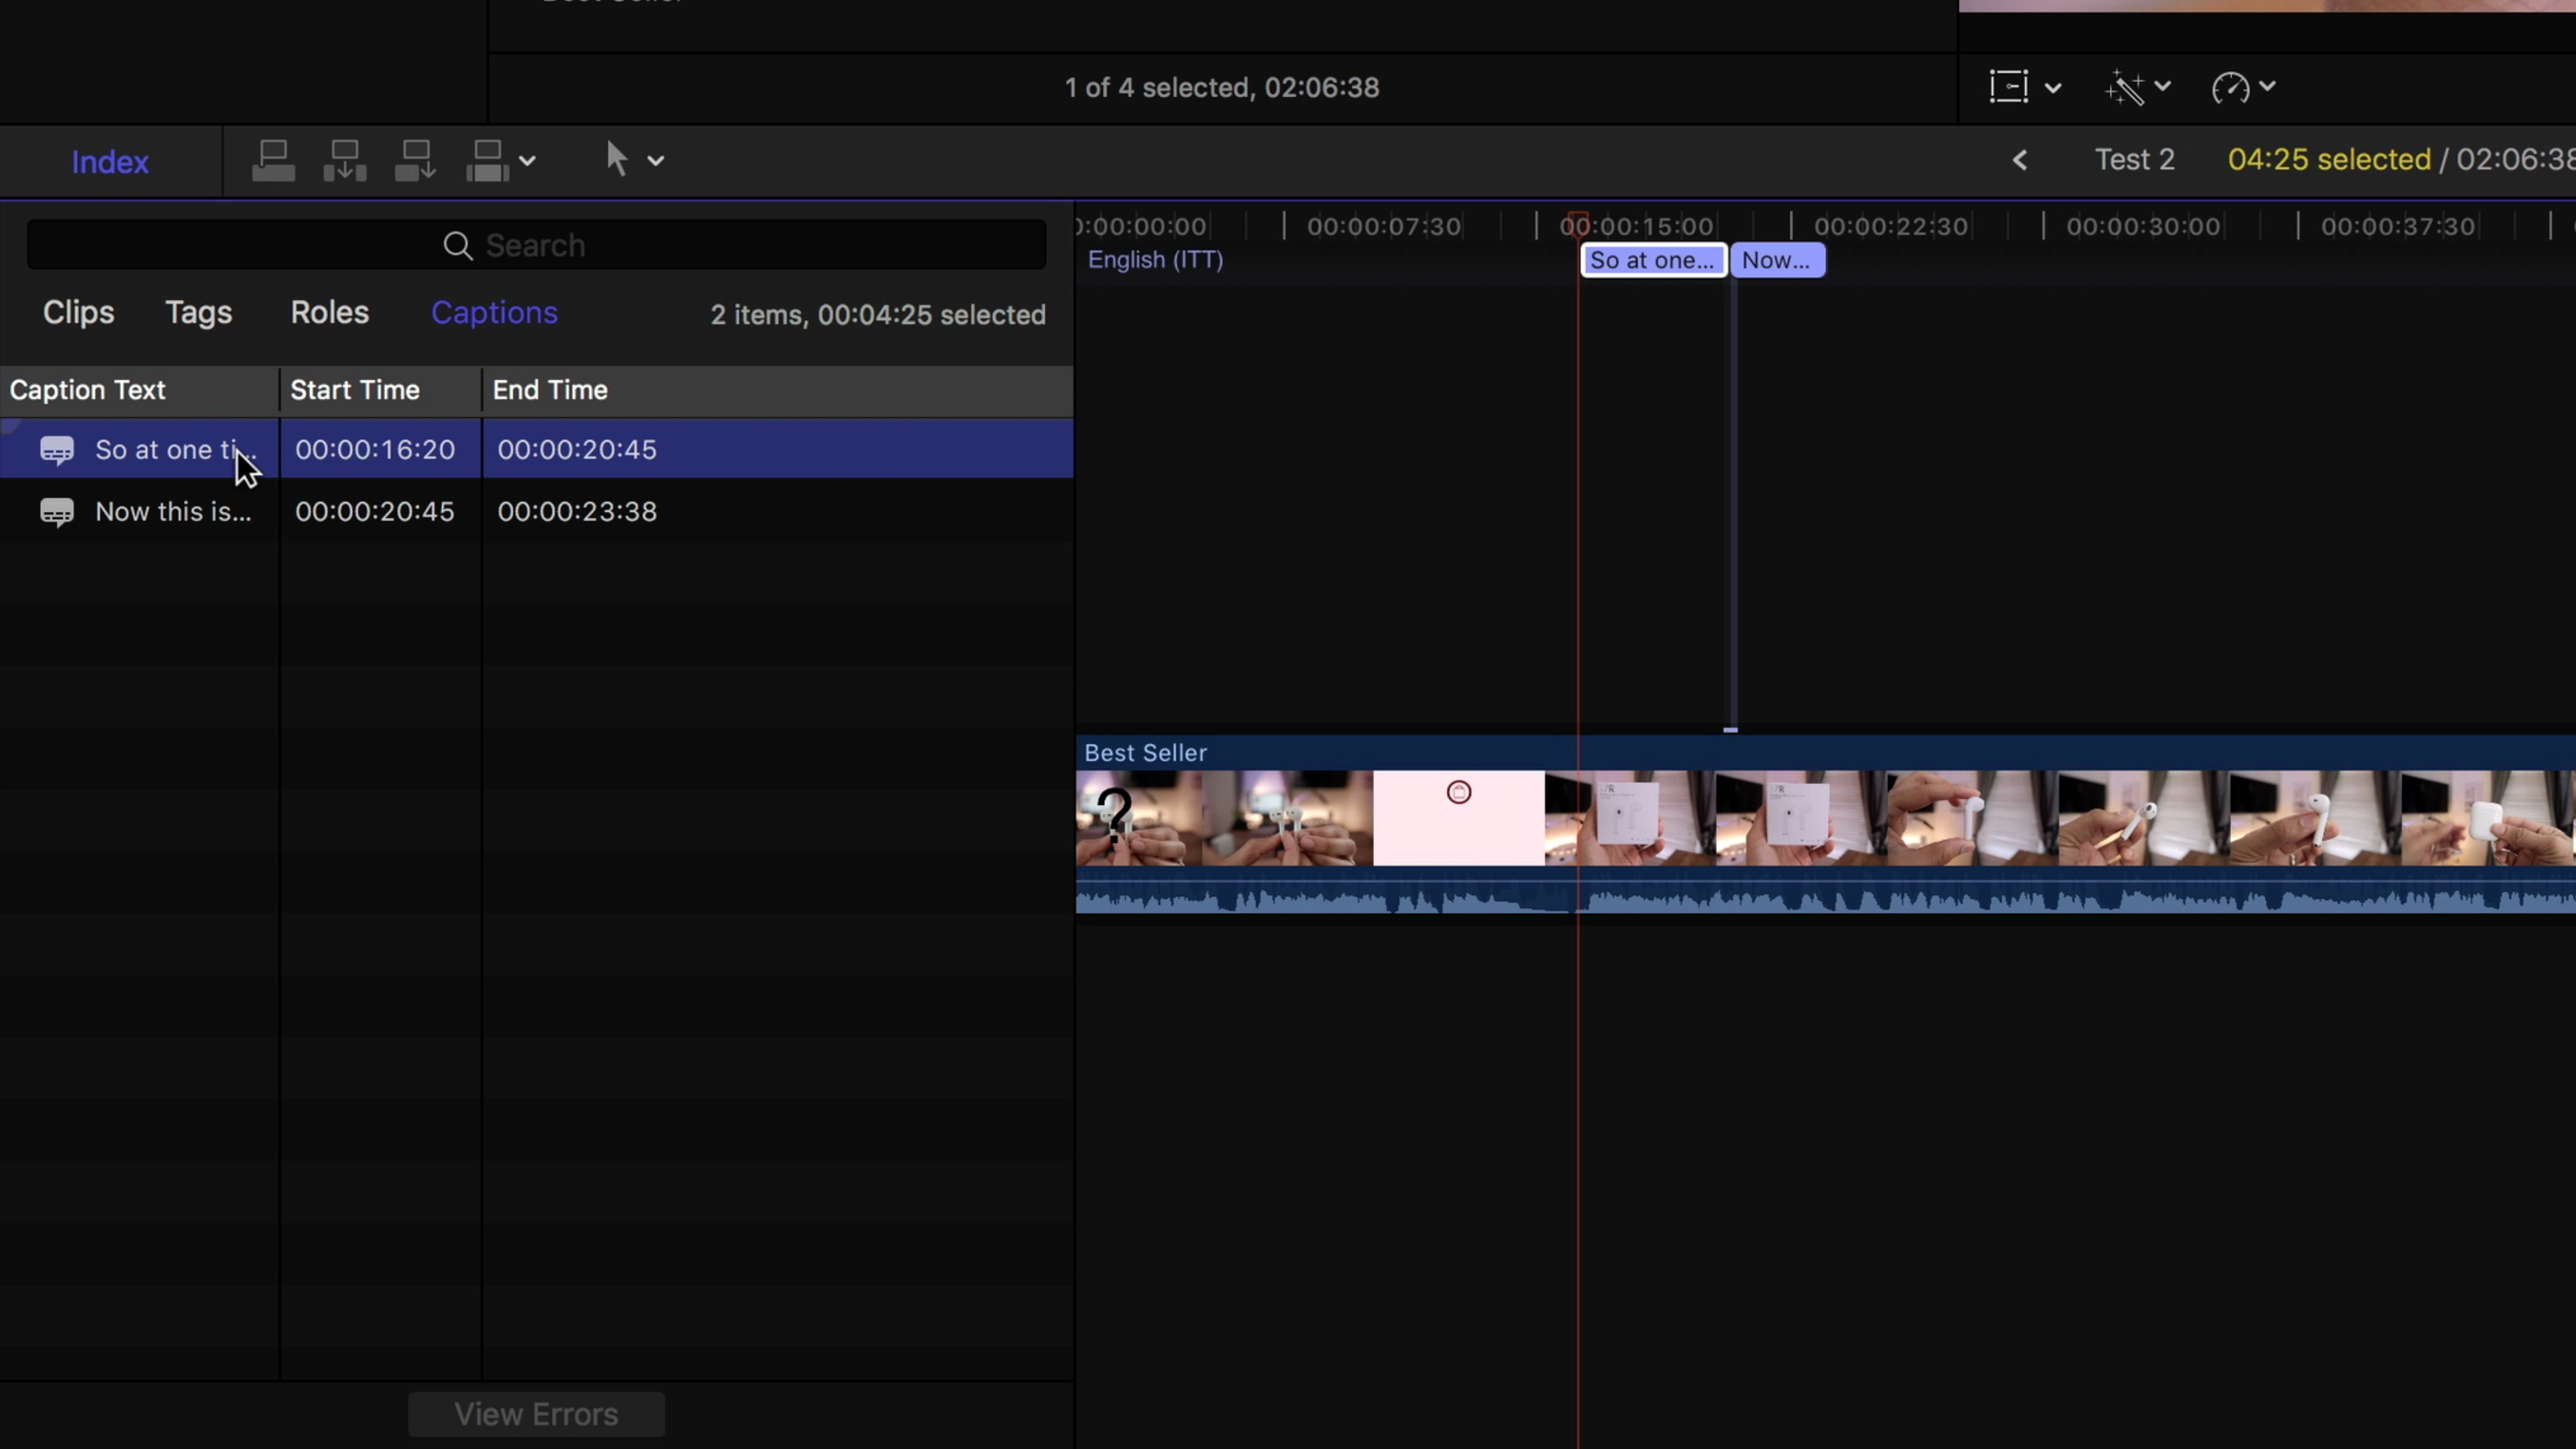 FCP X Tips 002: Closed captions in Final Cut Pro 10 4 1